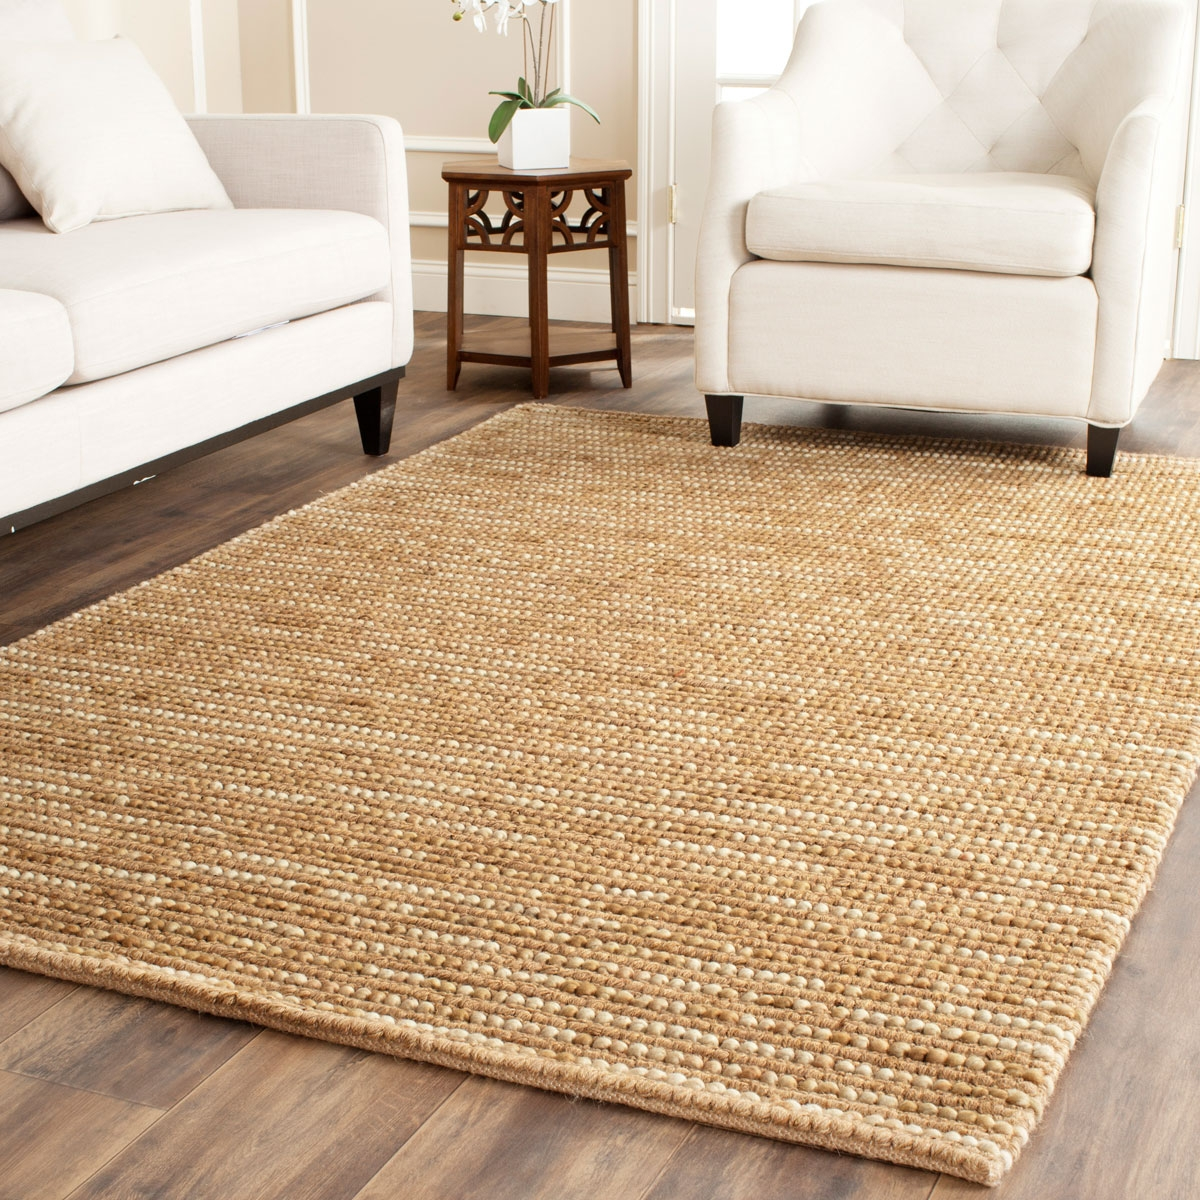 Rug Boh525f Bohemian Area Rugs Safavieh Pertaining To Square Wool Area Rugs (#6 of 15)